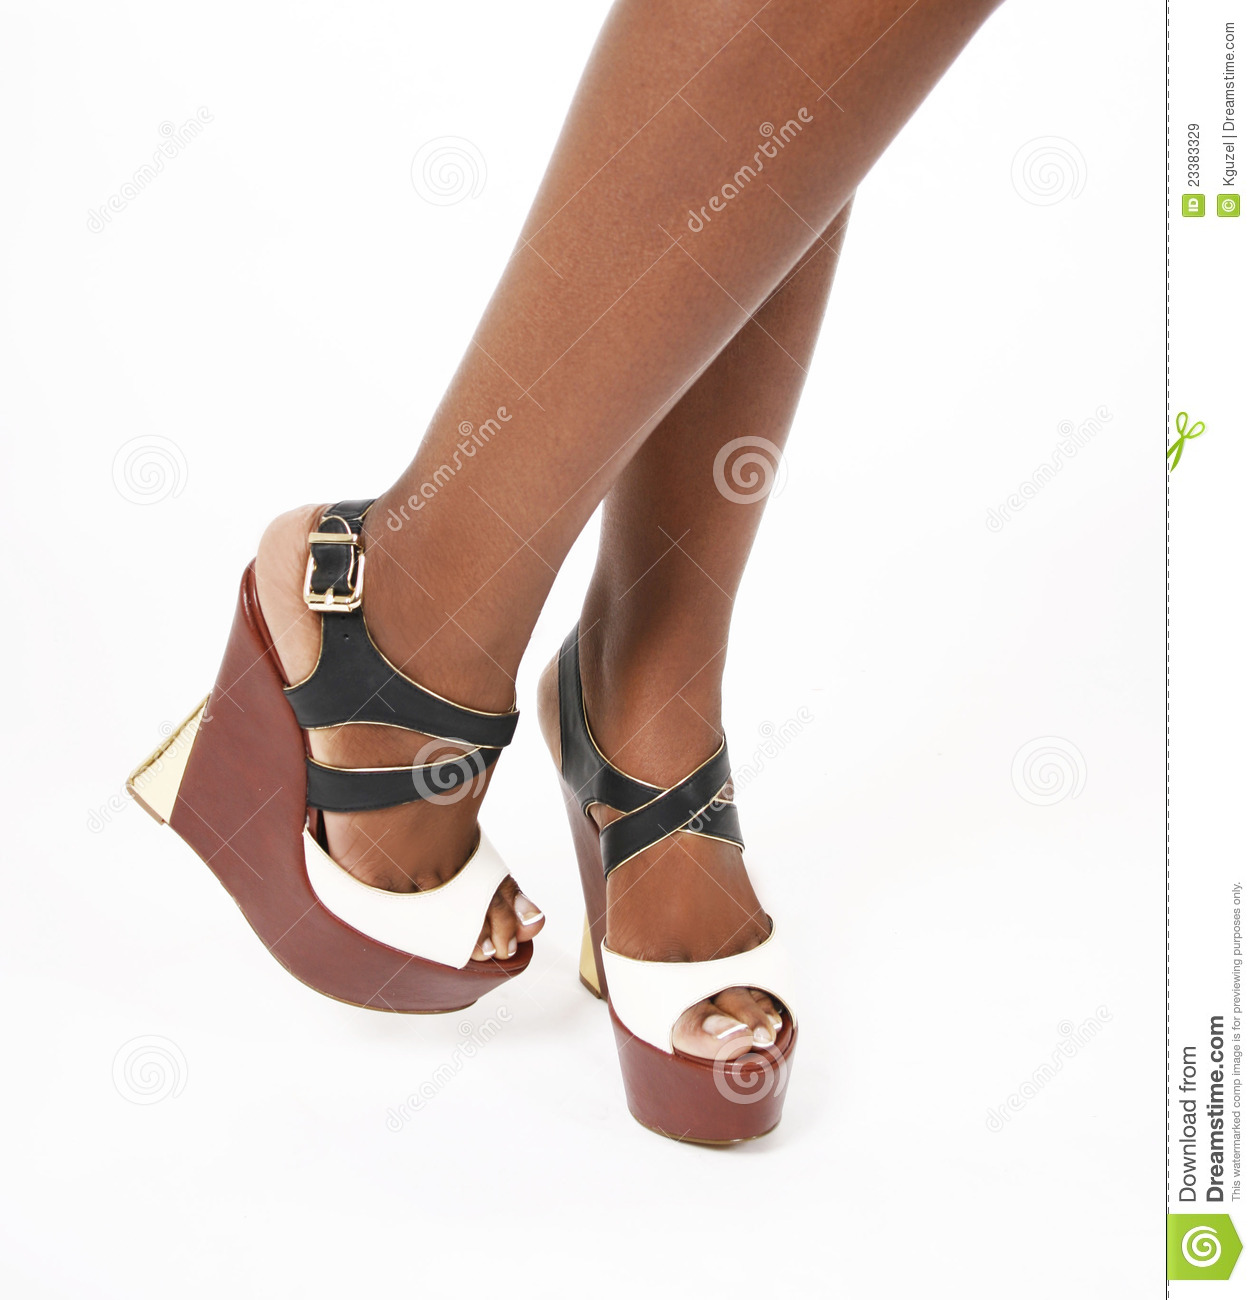 Wedges Shoes On Legs Royalty Free Stock Images Image